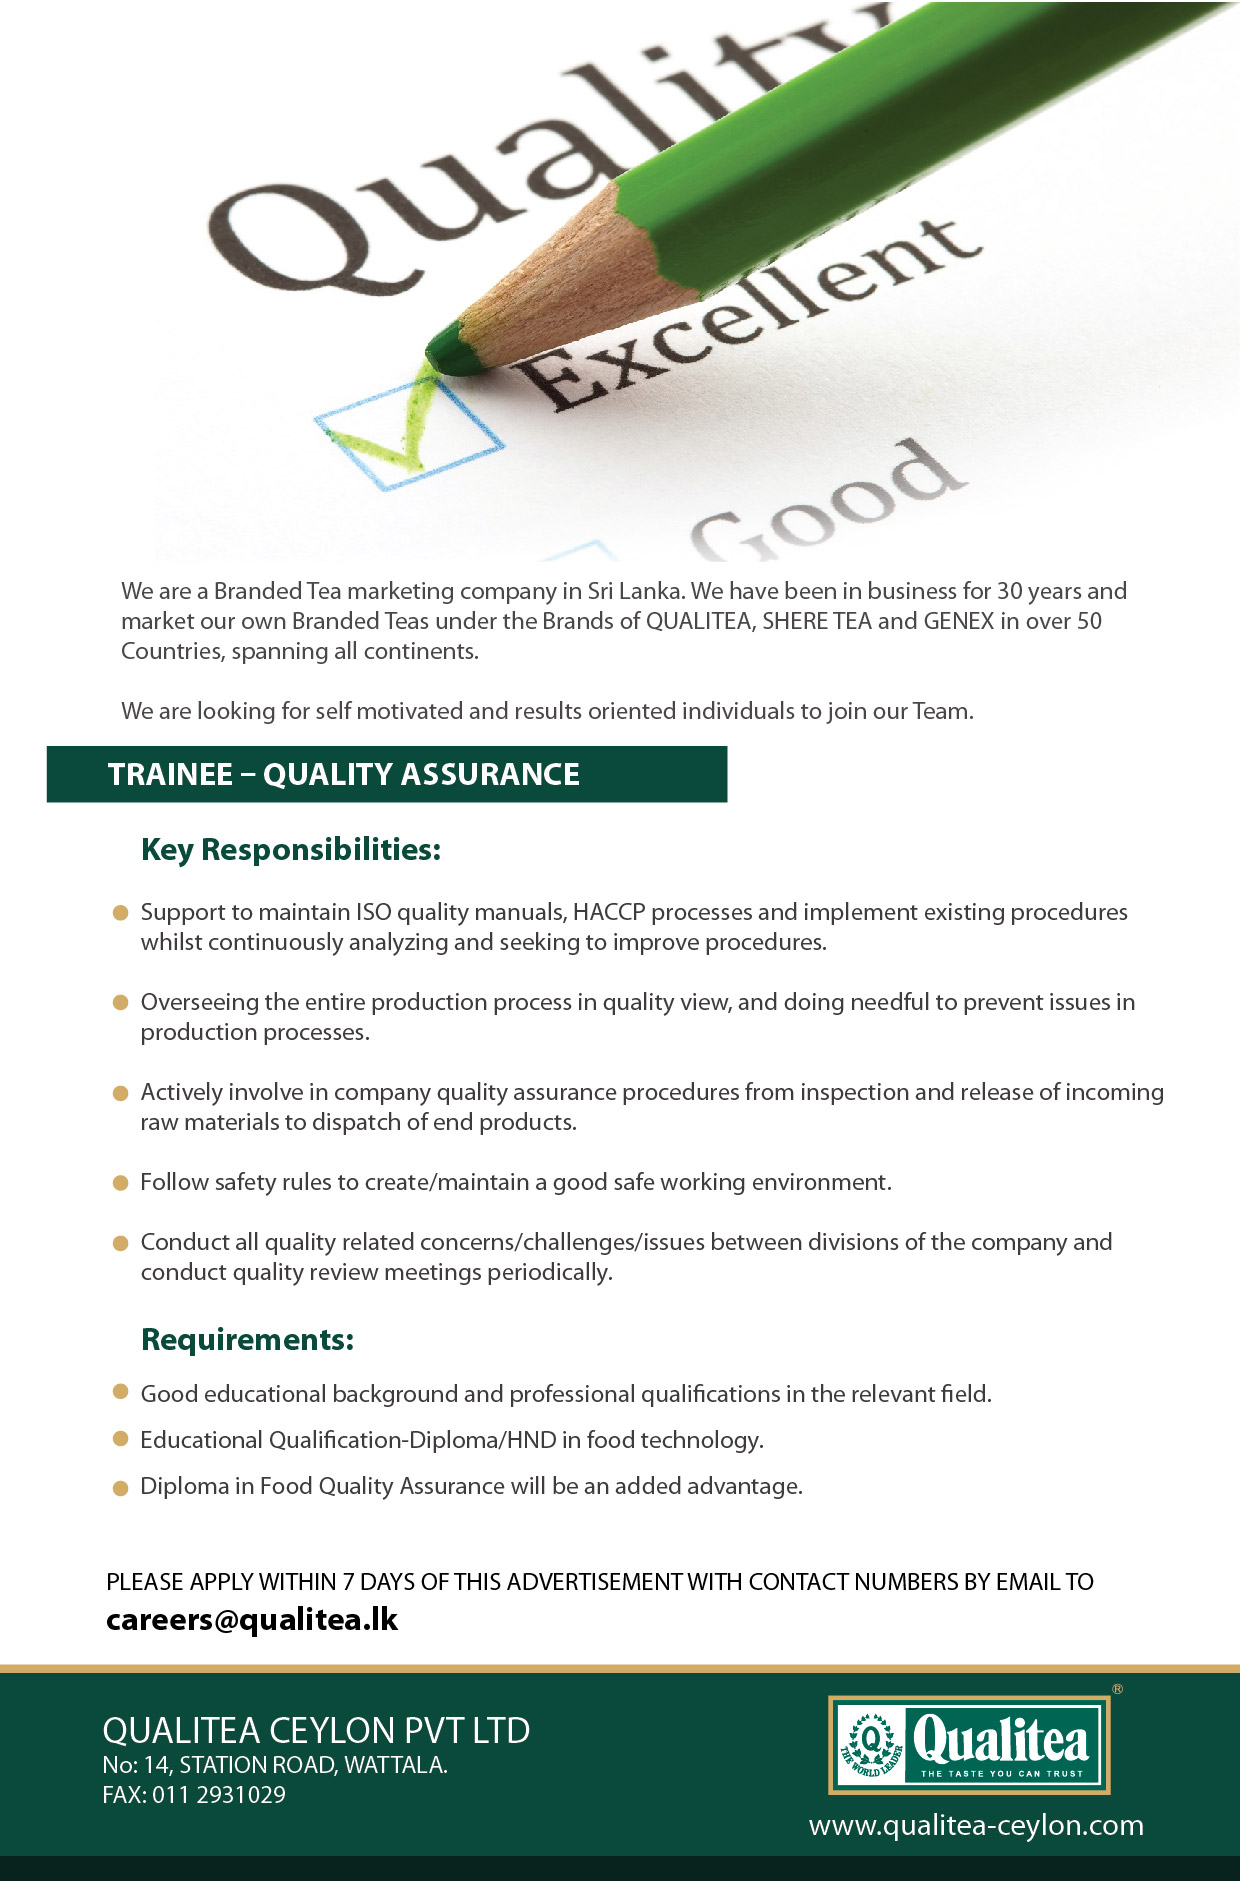 Top Jobs - 20200902 - Trainee - Quality Assurance